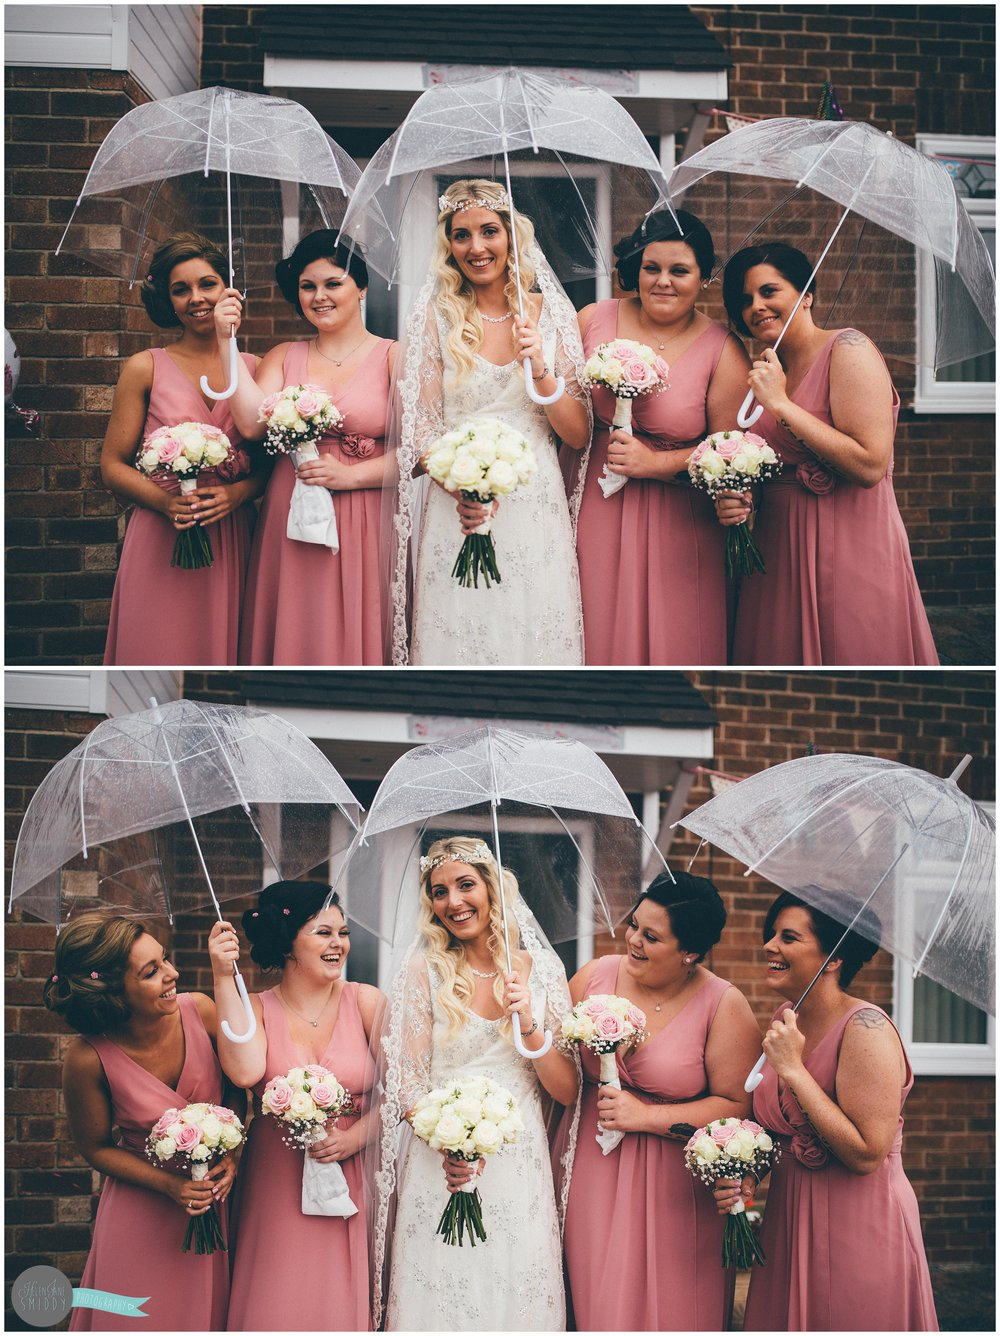 wedding-cheshire-cheshirewedding-weddingblog-blog-weddingdress-dress-gown-beadedgown-lace-cheshire-beautiful-golfclub-photography-silver-jewellery-chirstiandior-missdior-bridalprep-weddingmorning-bridesmaids-flowers-bridalbouquet-roses-whiteroses